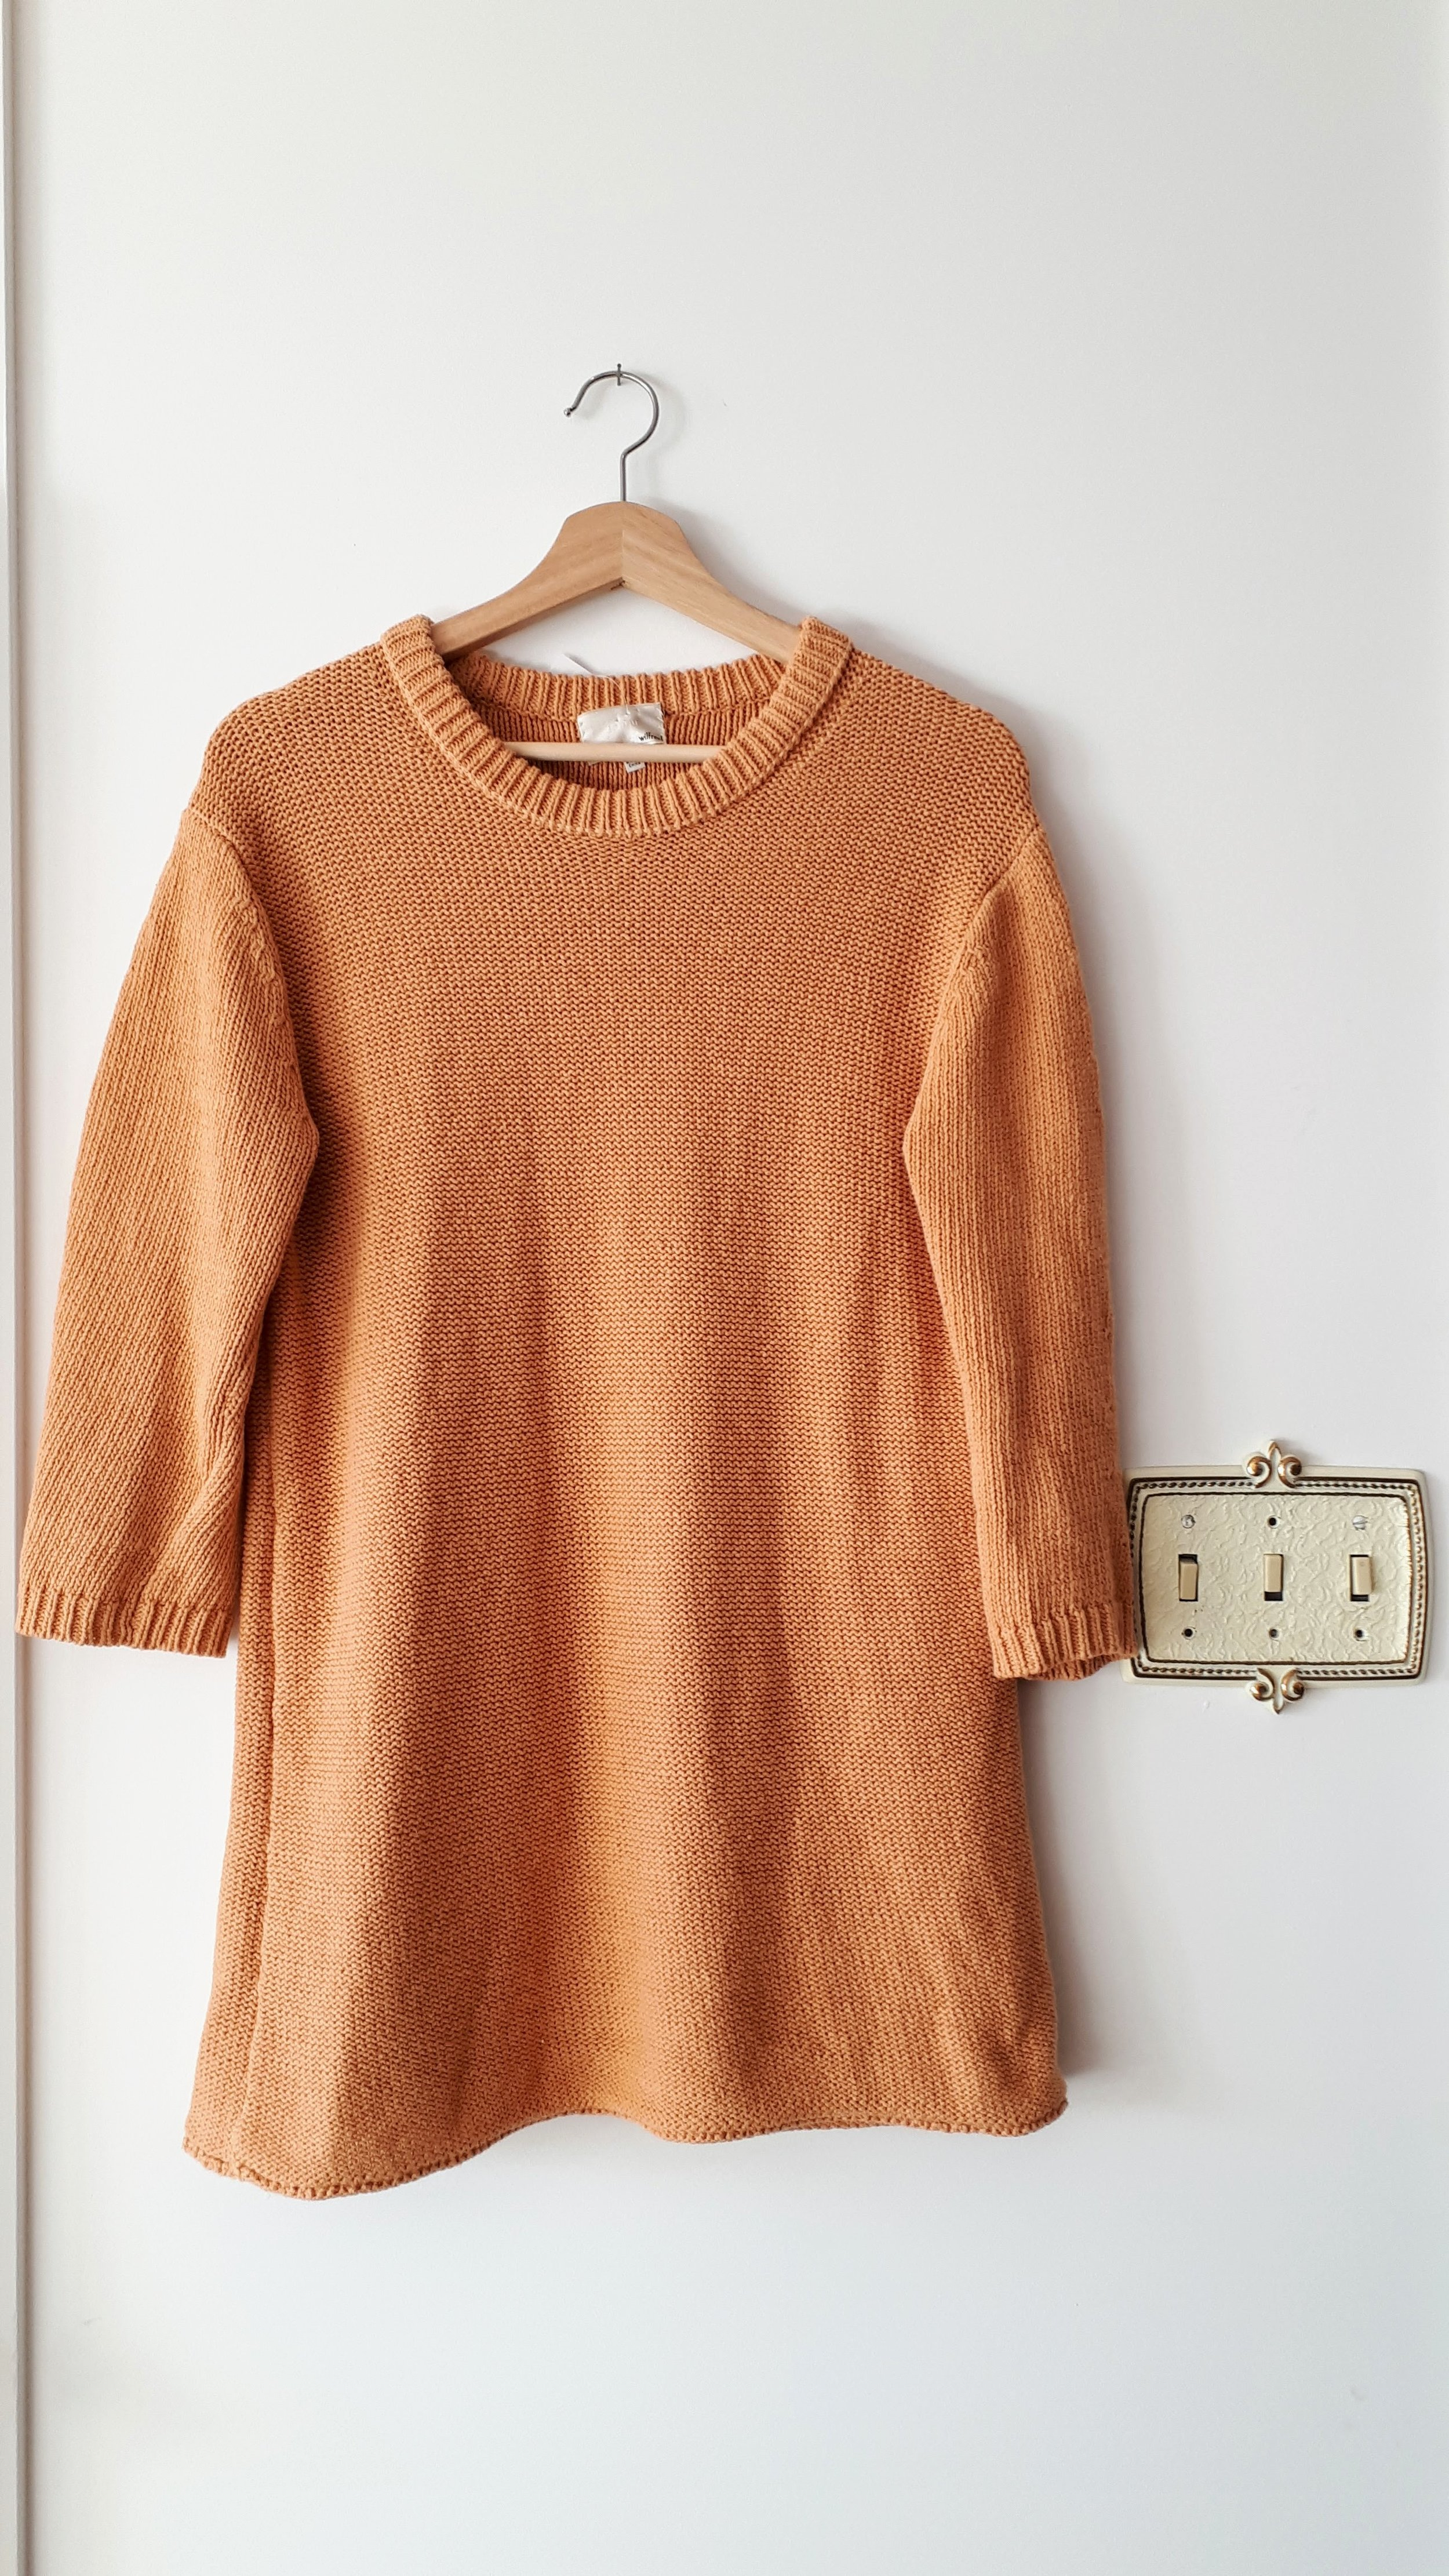 Wilfred tunic; Size S, $38